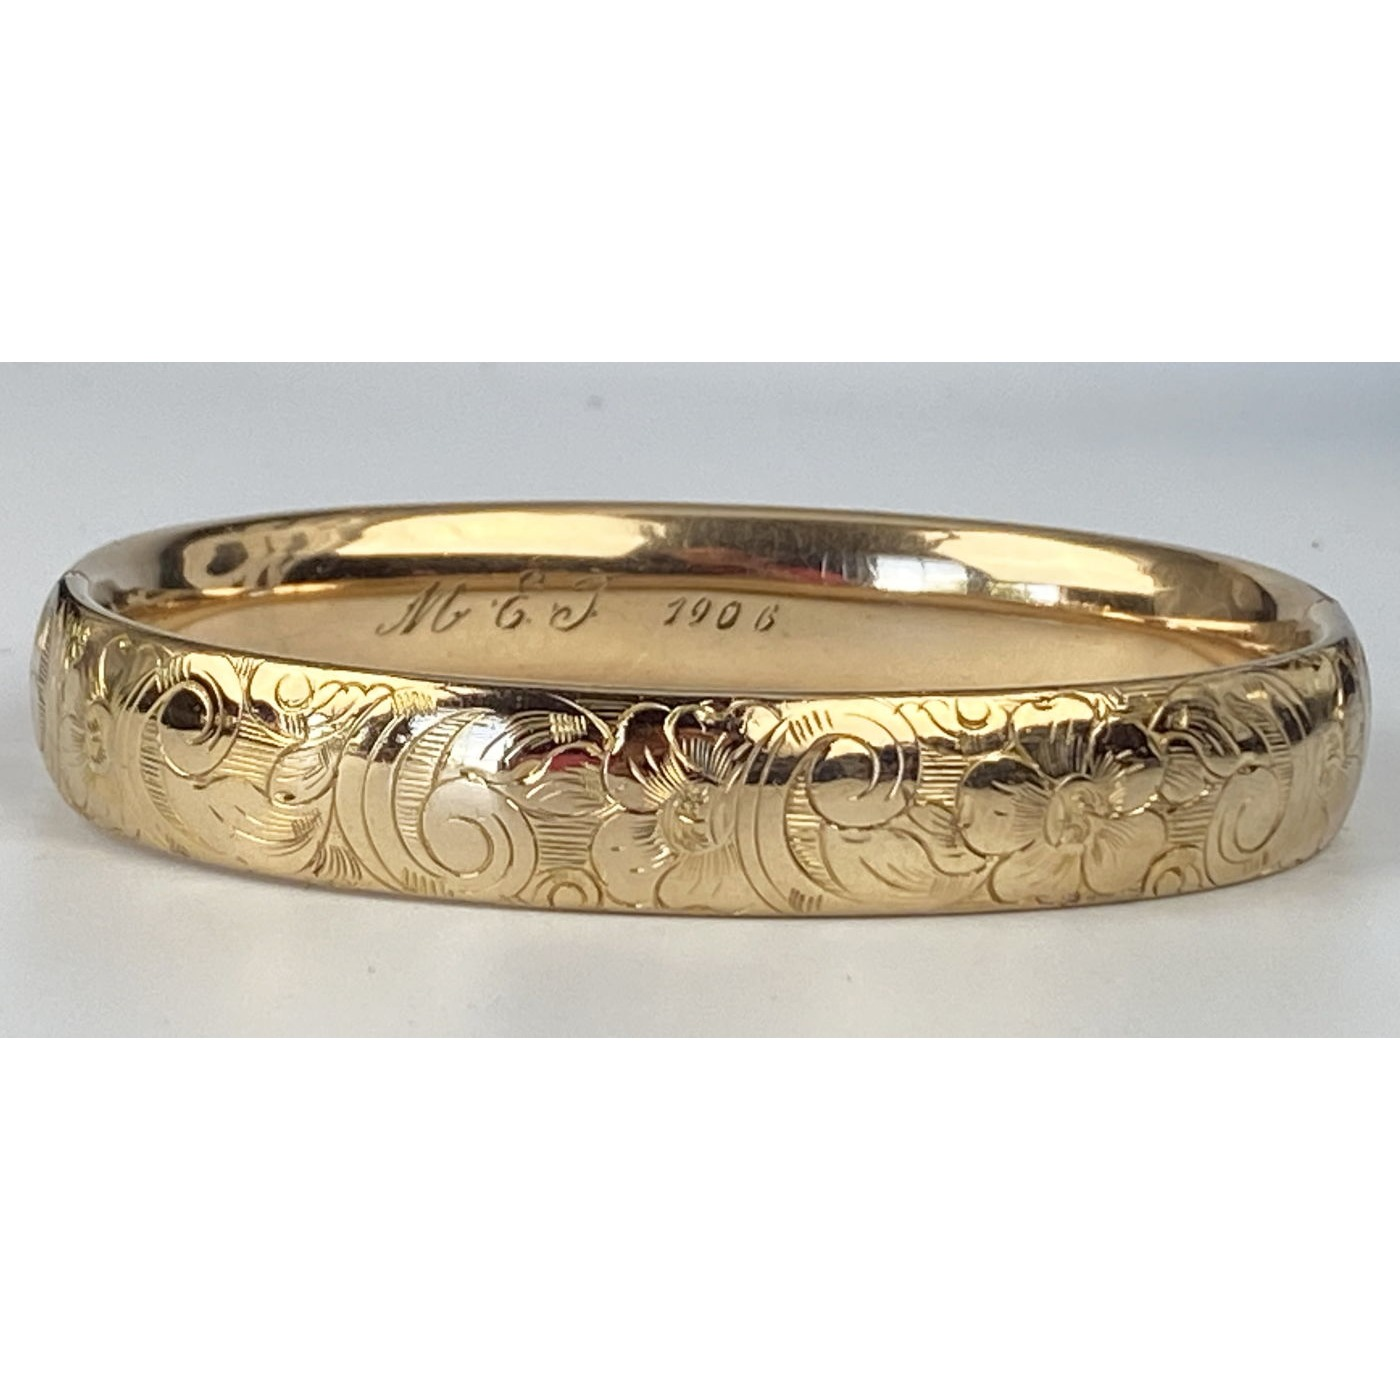 Larger Wrist All Around Floral Scroll Engagement Bangle